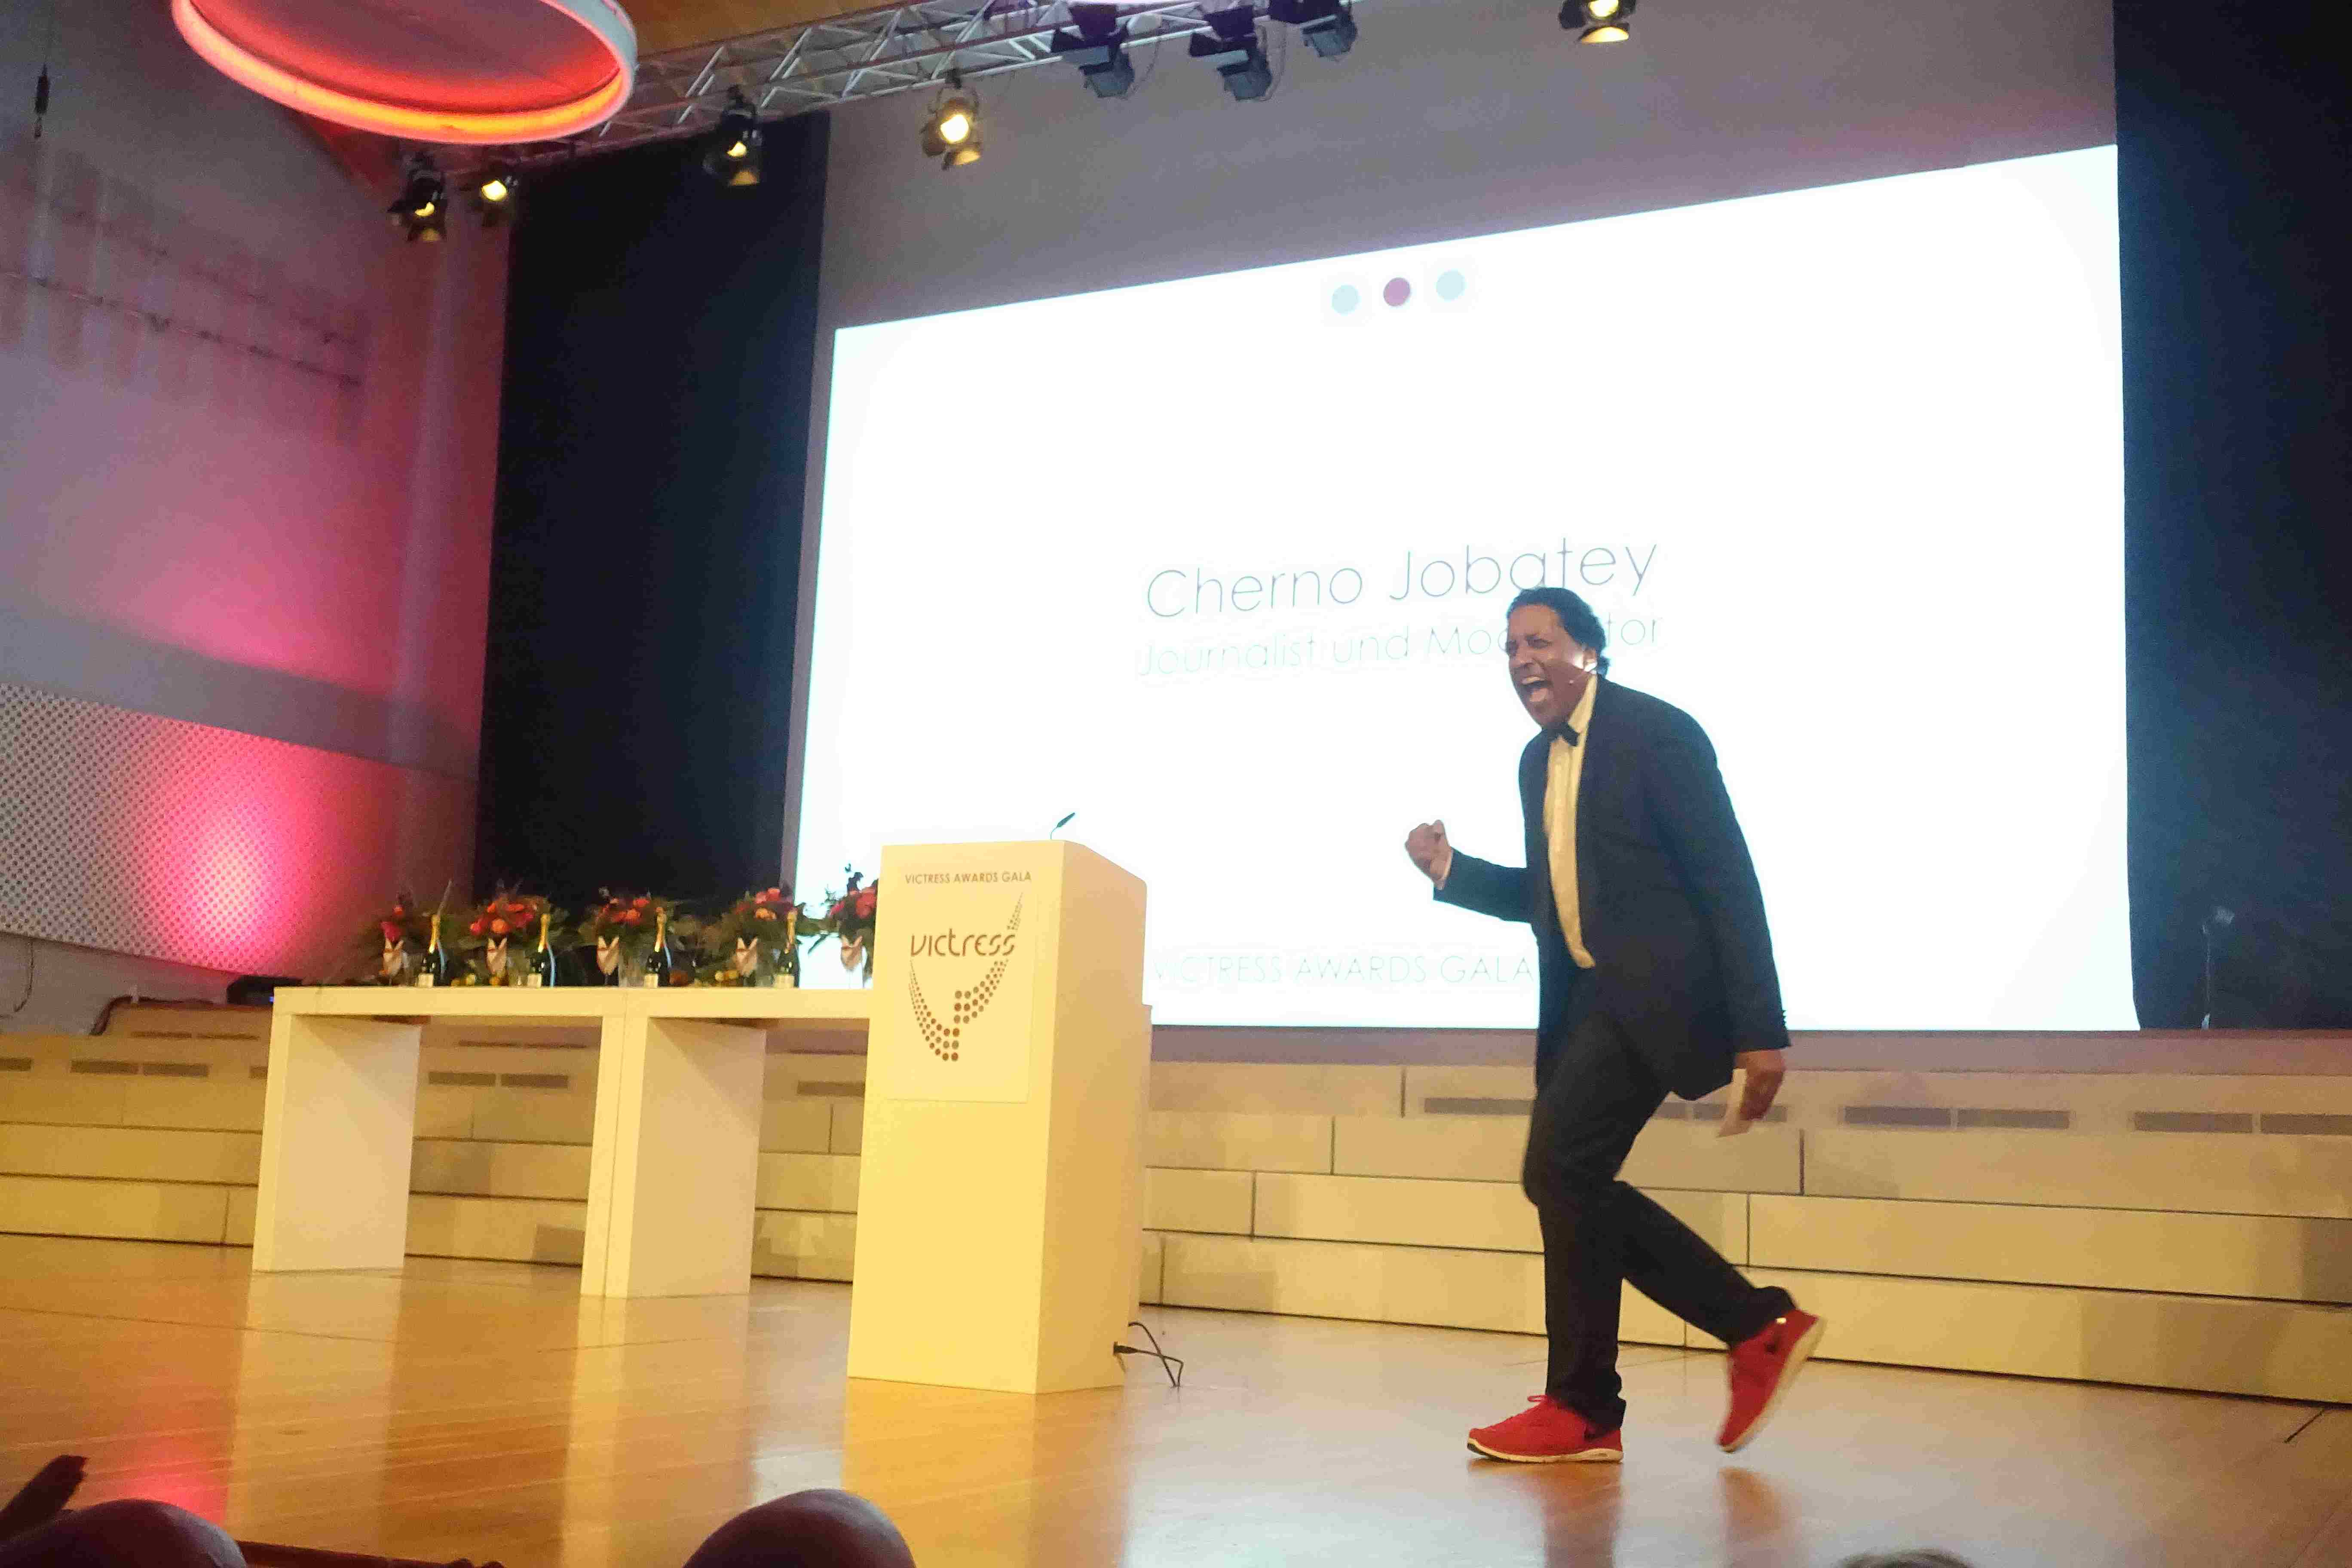 Cherno Jobatey screams on stage